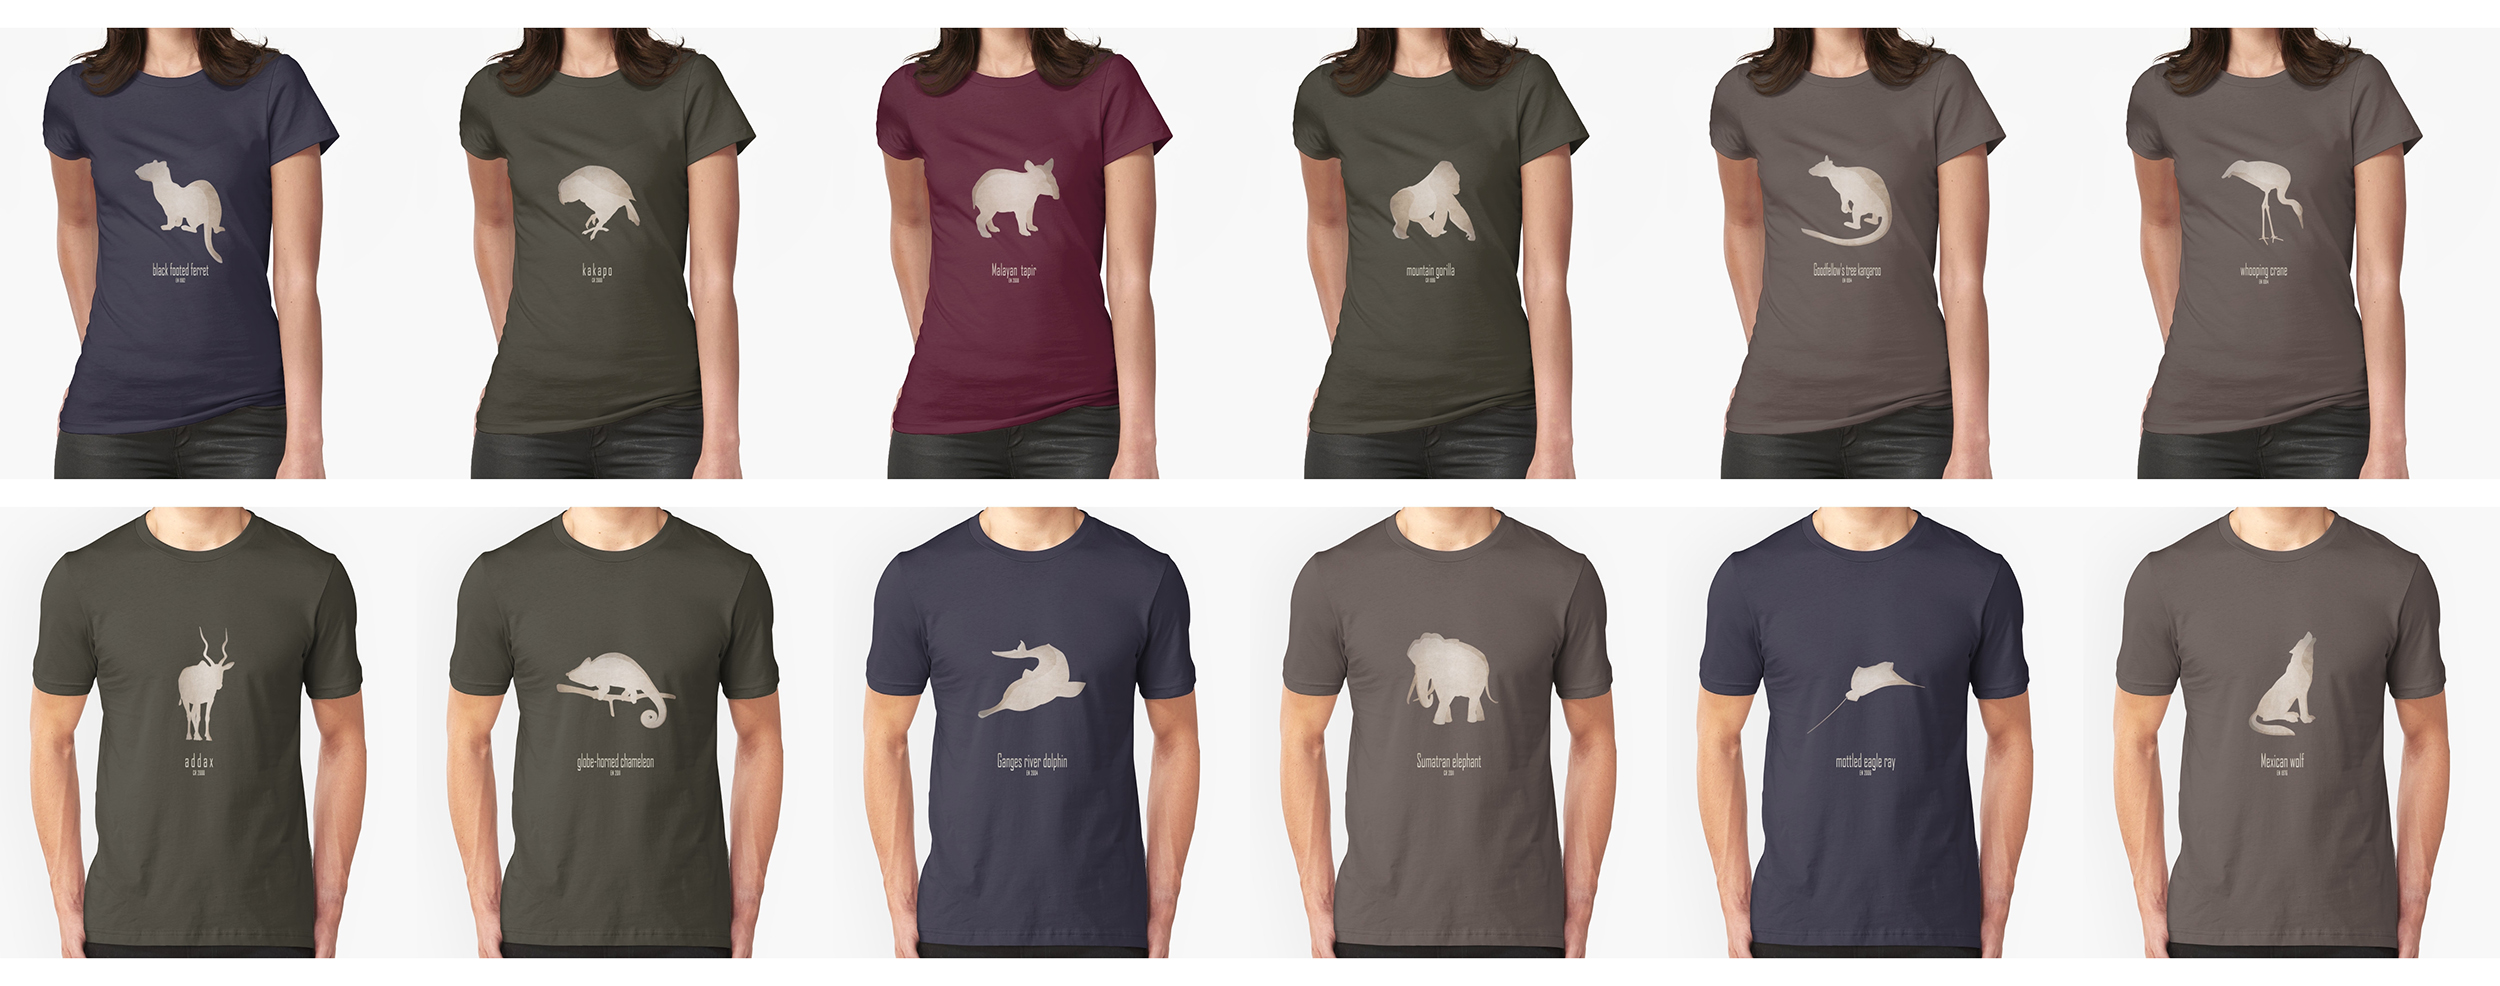 t-shirt men mens womens woman man babies kids boys girls clothes apparel endangered animals names list species near extinction critically wildlife conservation foundation wildcare act IUCN red list logo endemic environmentalist save planet earth emblematic symbol